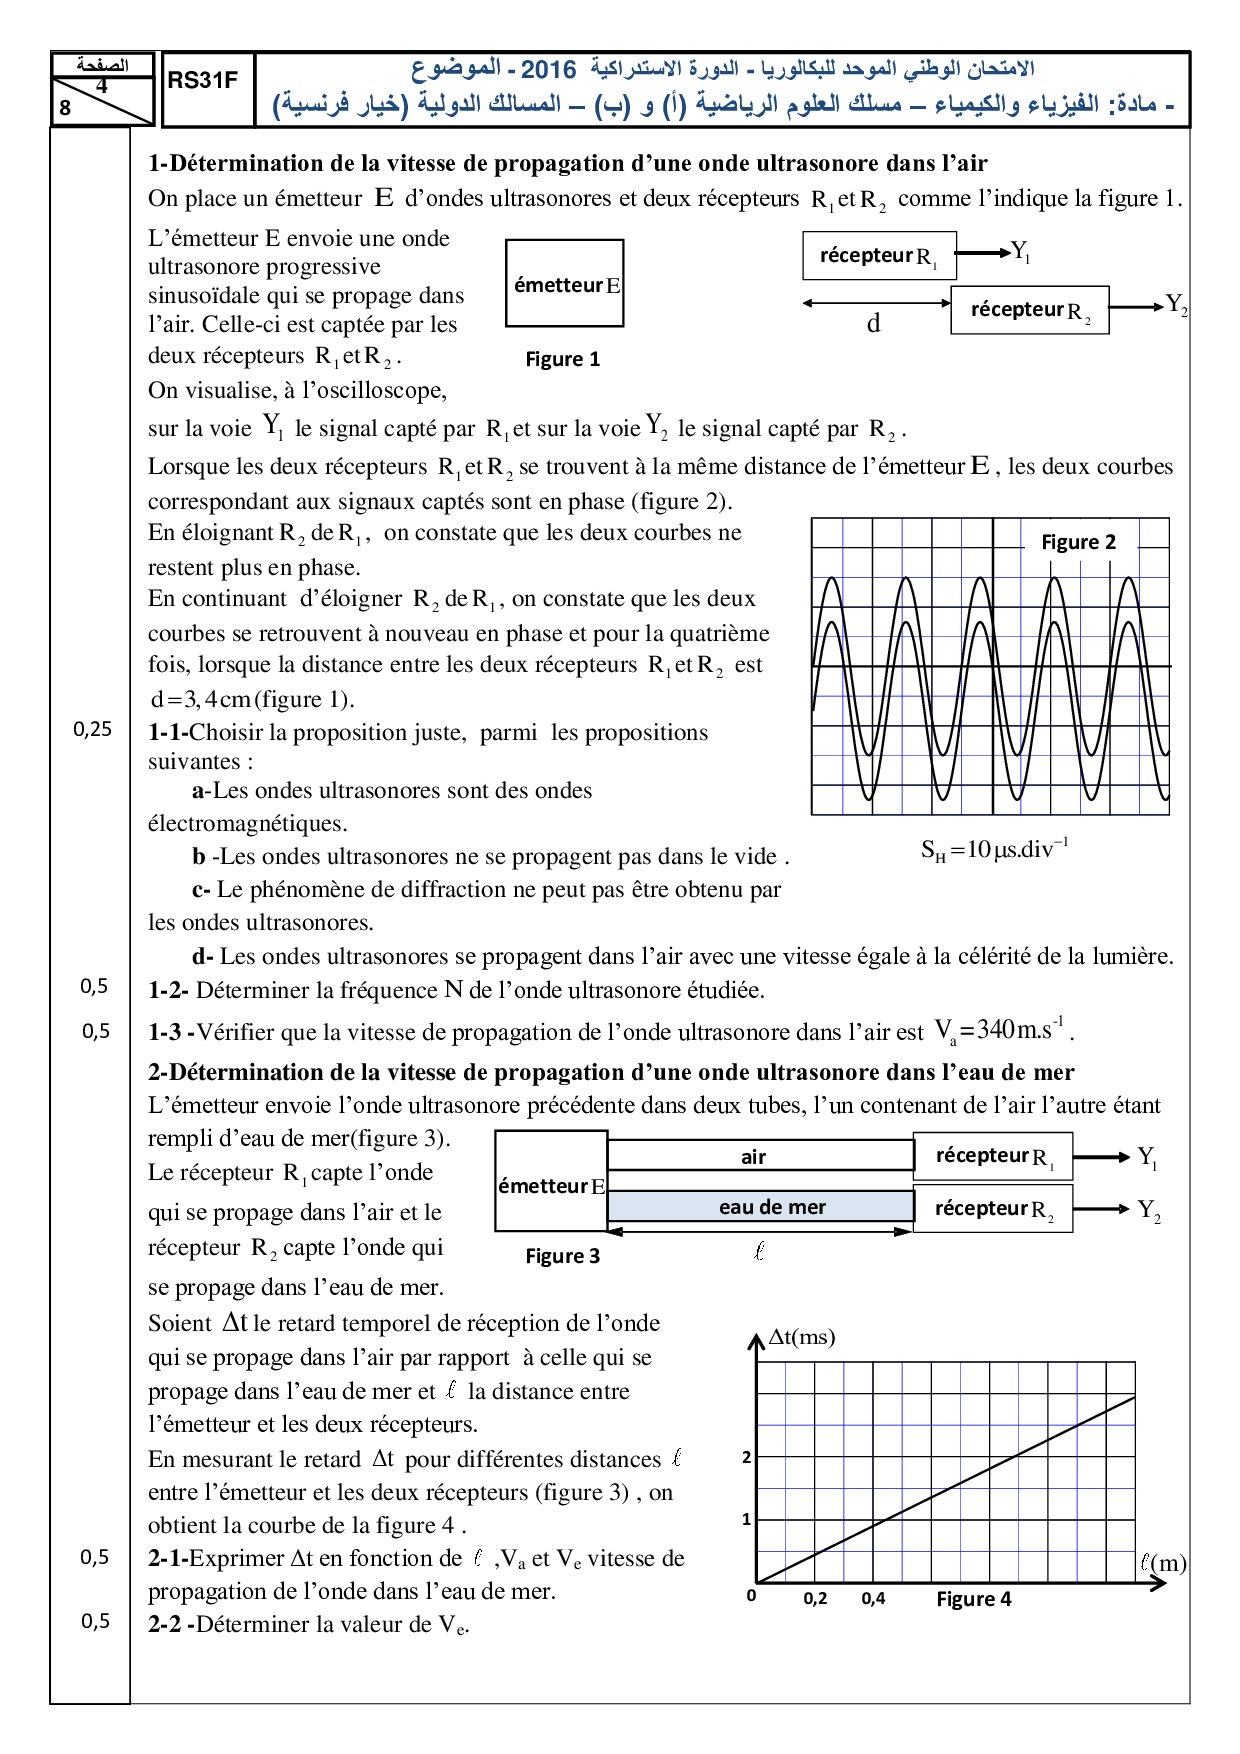 Examen National Physique-Chimie Sciences Maths 2016 Rattrapage - Sujet4.jpg